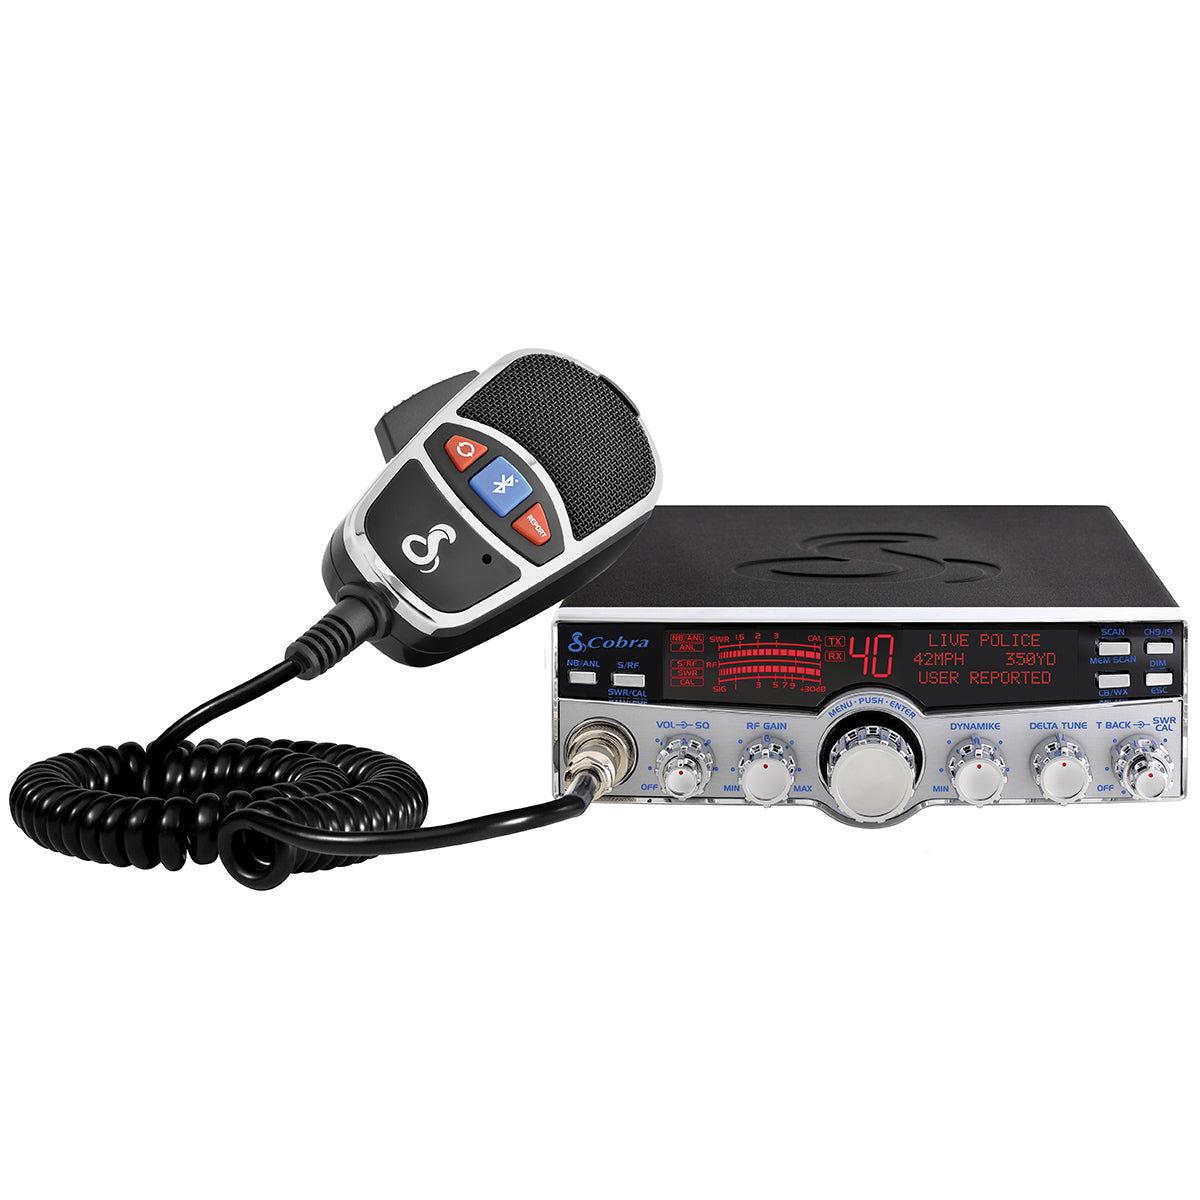 Smart Hands-Free CB Radio with NOAA and Emergency Alert